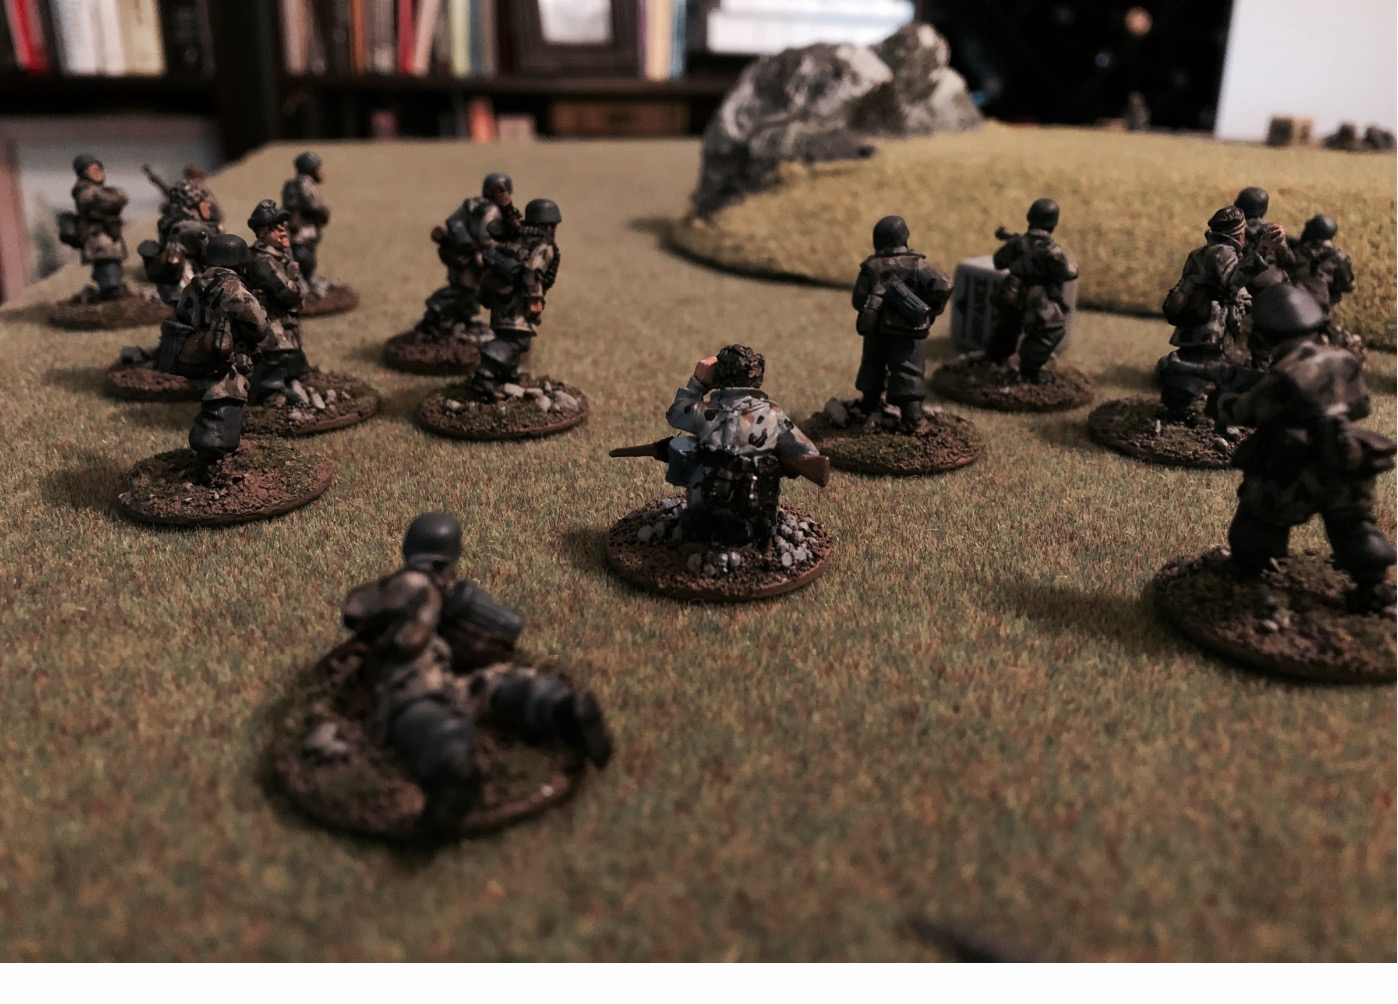 Skinner's Commandos versus The Wall in a fierce infantry engagement